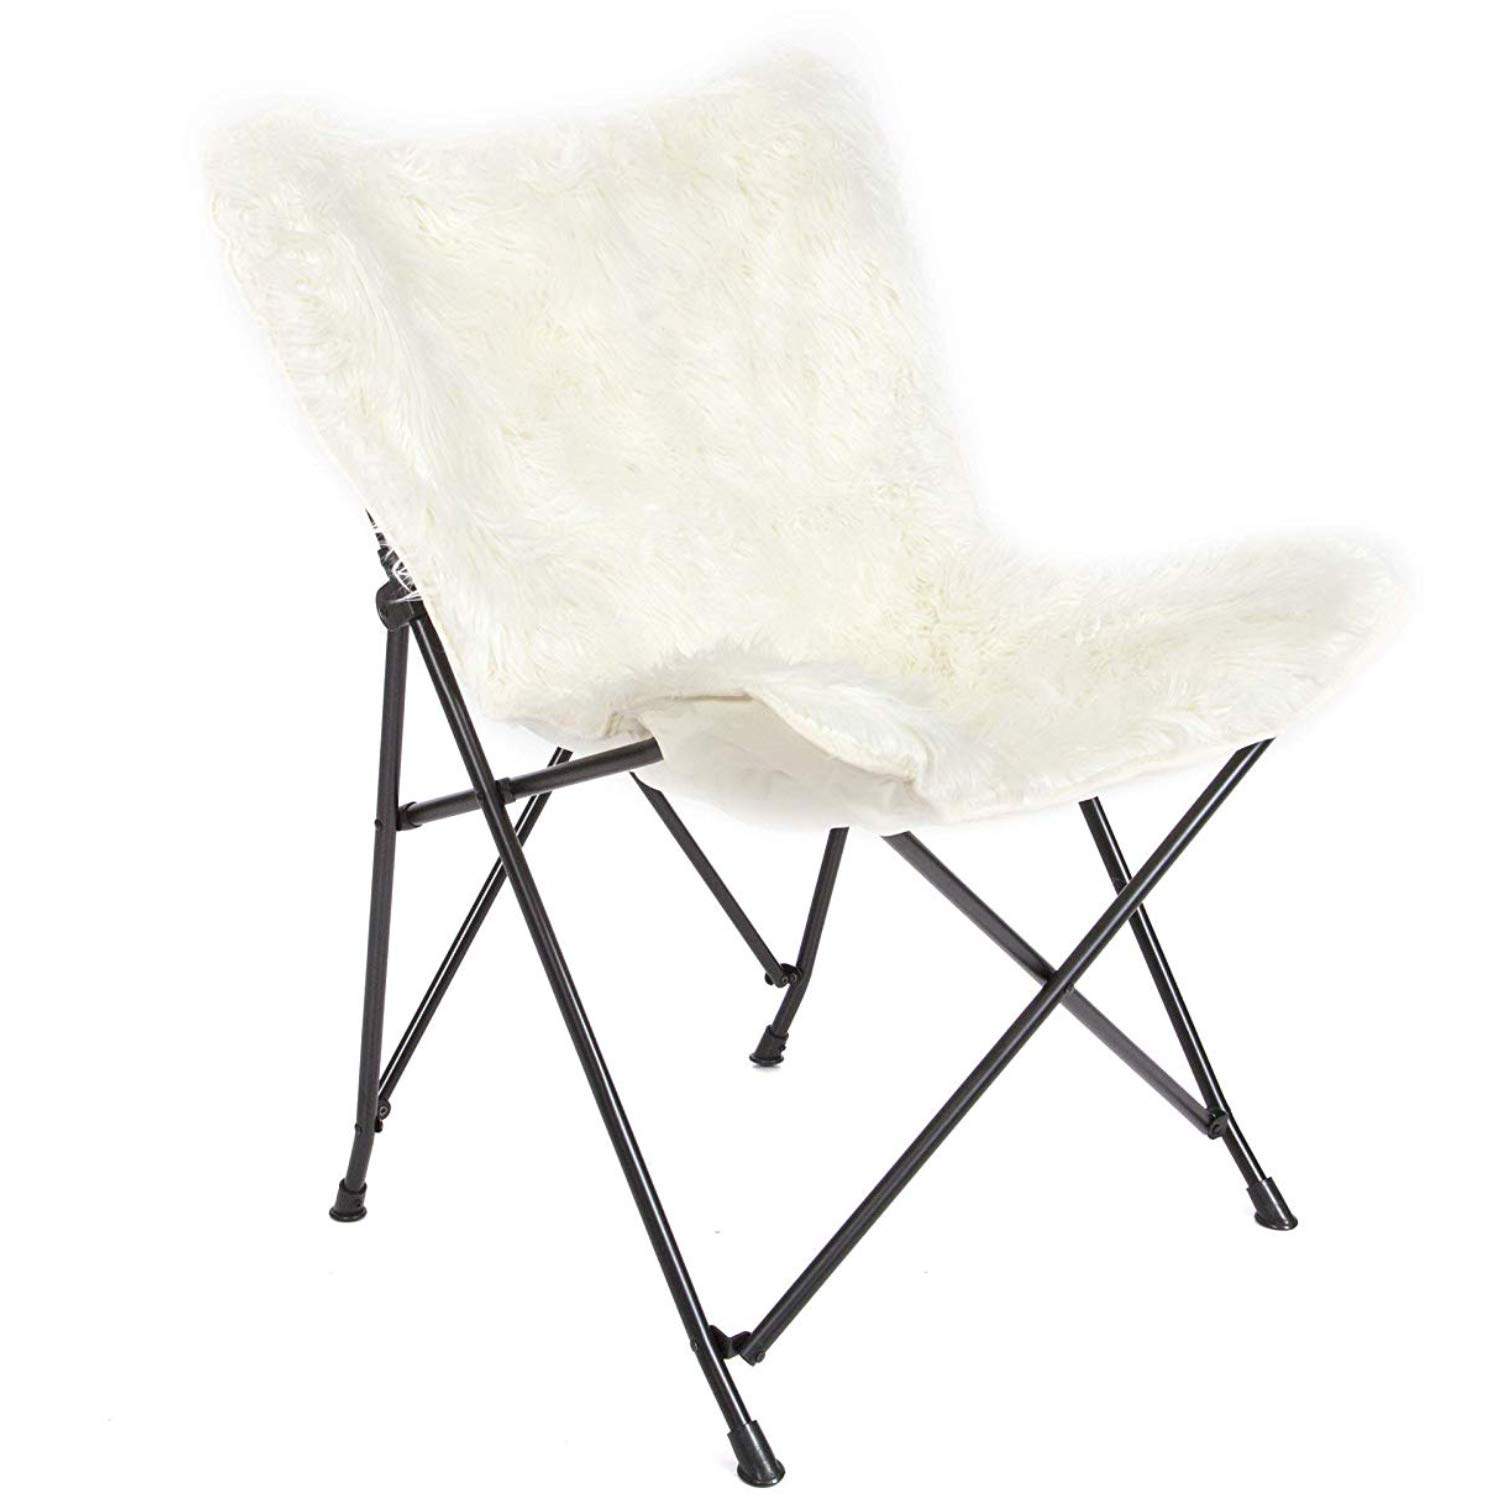 Mac Sports White Fur Chair, Folding Butterfly Frame with Removable Fuzzy Fur | Desk Chair for Women and Teen Girls, Cute Desk Chair for Room Decor, Lightweight and Foldable/Portable | White Accent by Mac Sports